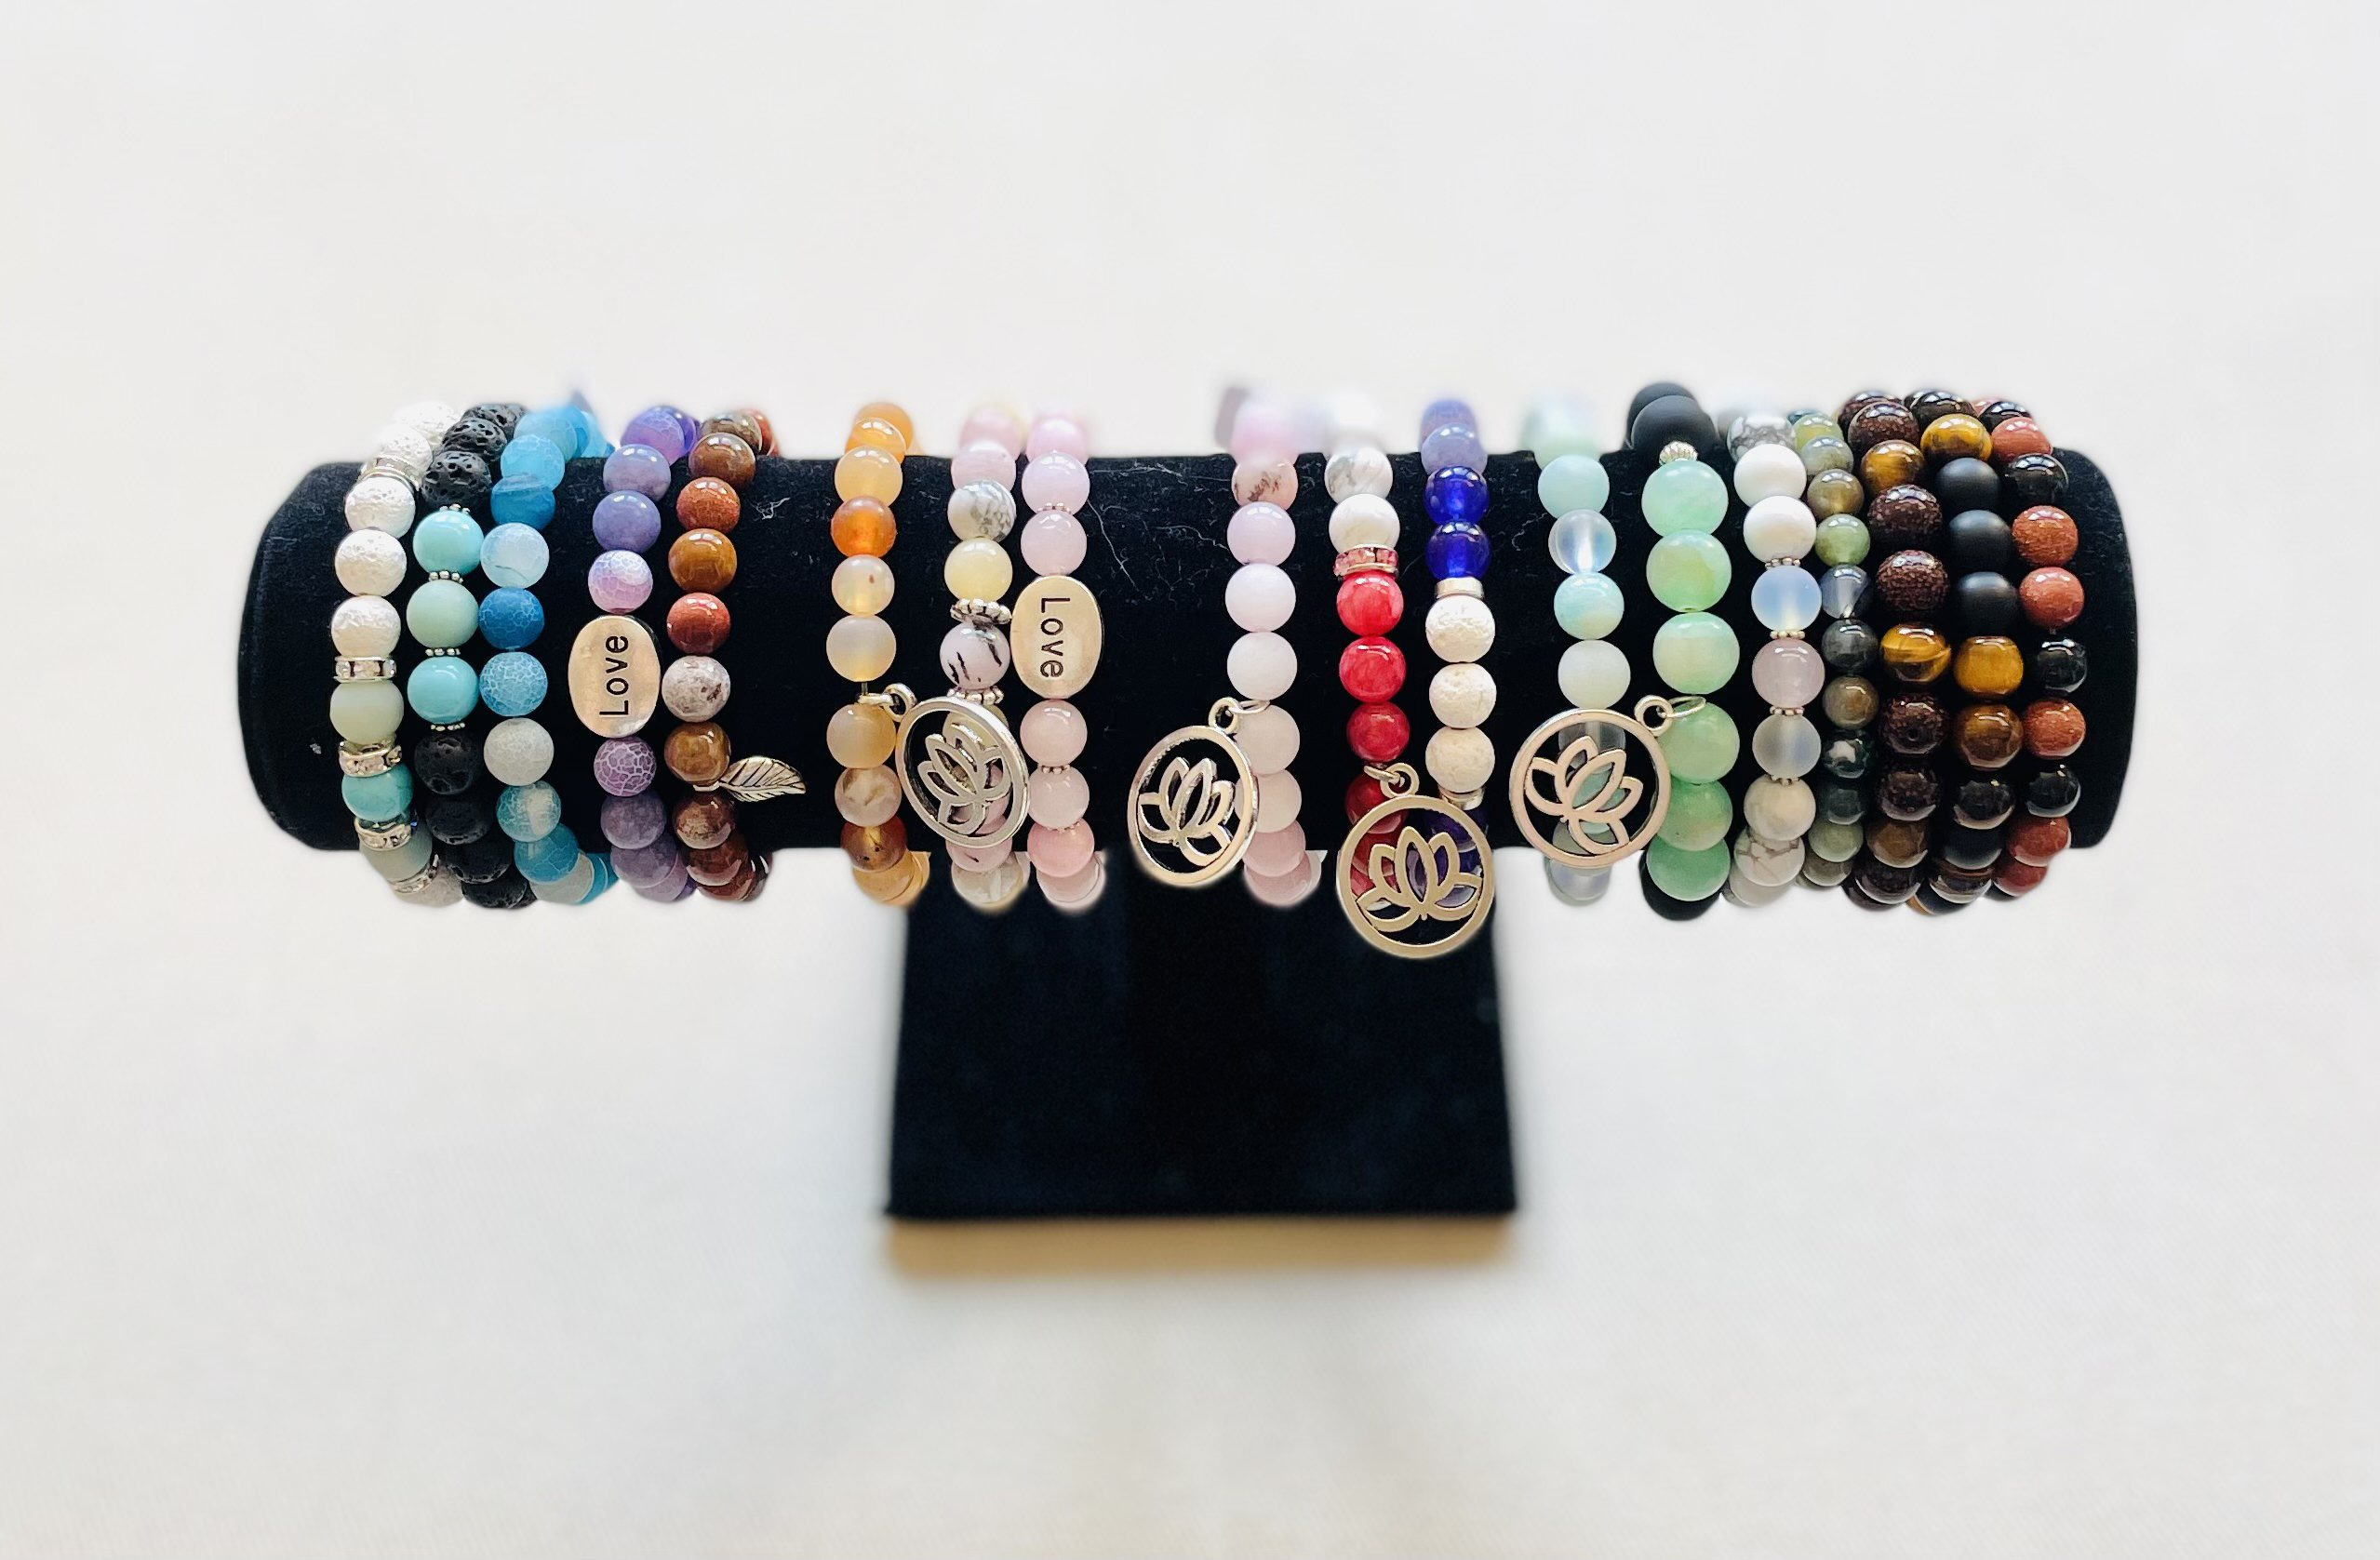 Double M Designs 20 Giving Back to Local Charities through every purchase